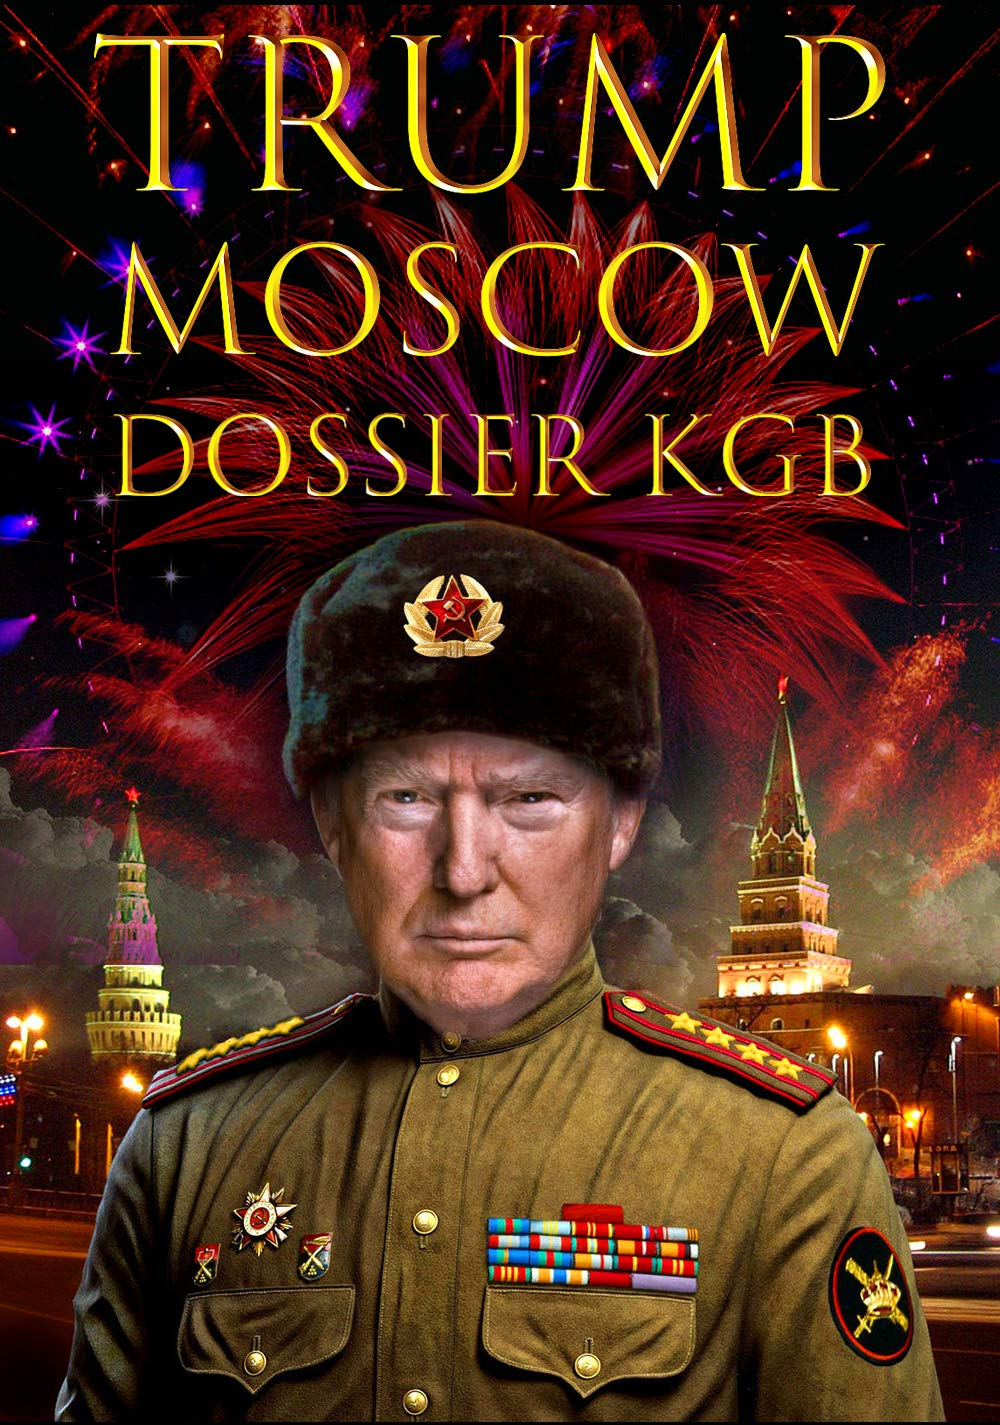 Trump book Moscow dossier KGB: The real reason why Trump is president of the USA